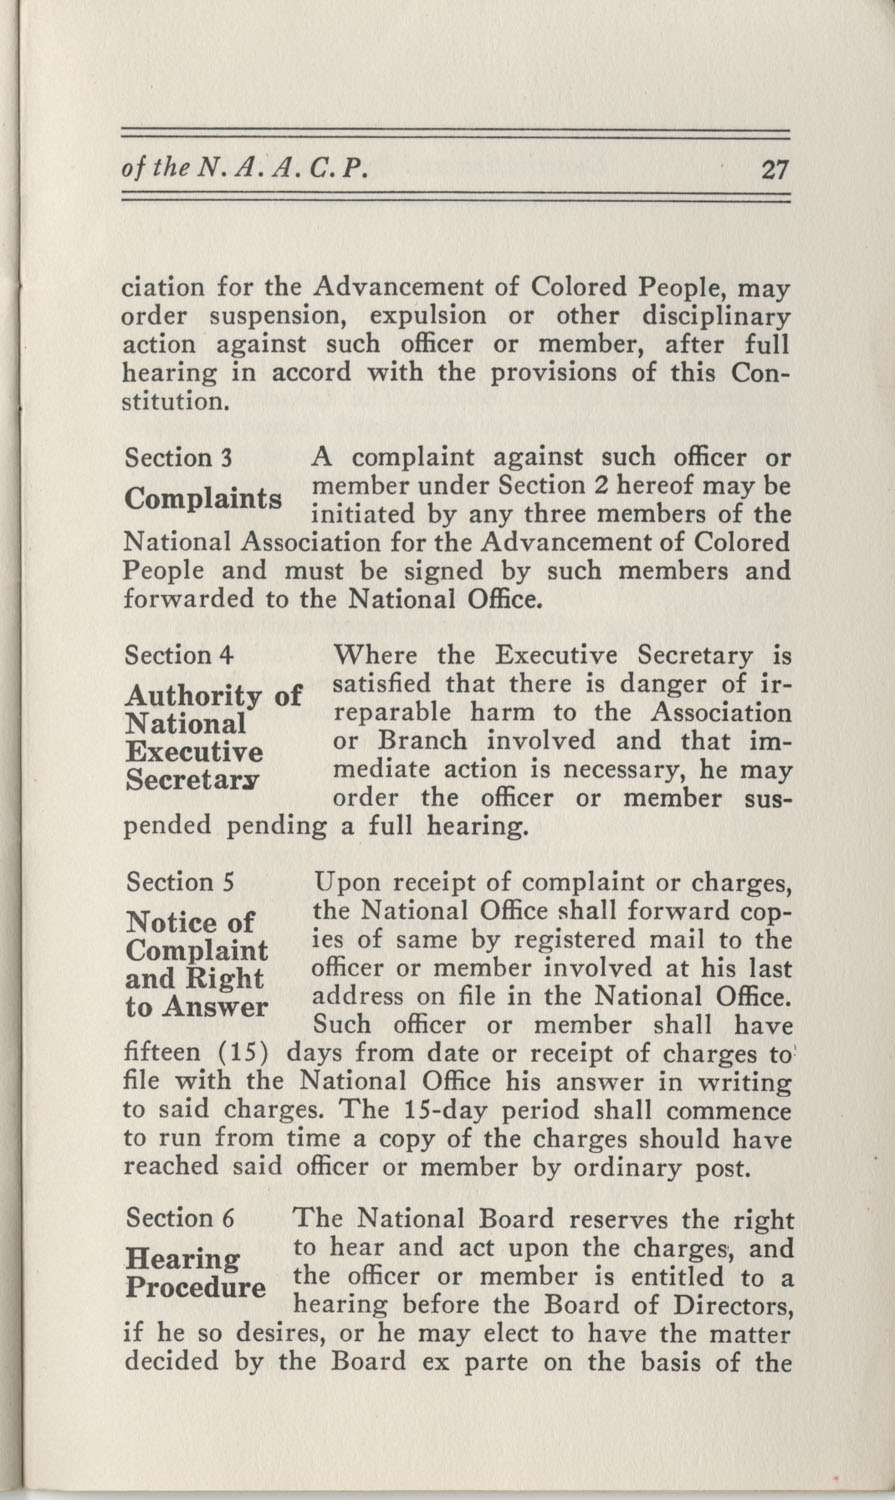 Constitutions and By-Laws, September 1960, Page 27